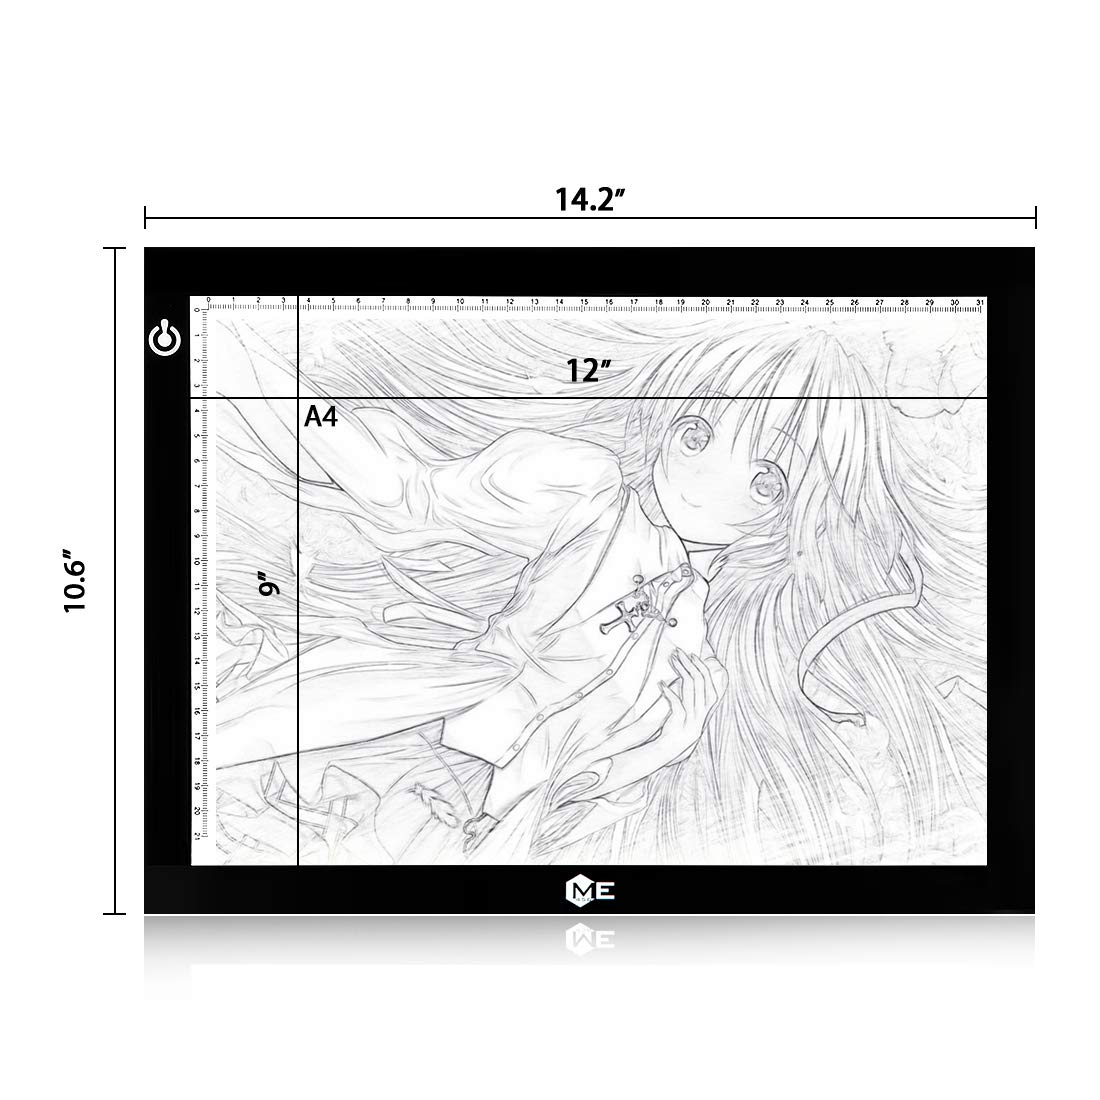 Dimmable A4 LED Tracer Light Box Slim Light Pad, ME456 USB Power Drawing Copy Board Tattoo Tracing LED Light Table for Artists Designing, Animation, Sketching, Stenciling (Black) by ME456 (Image #4)